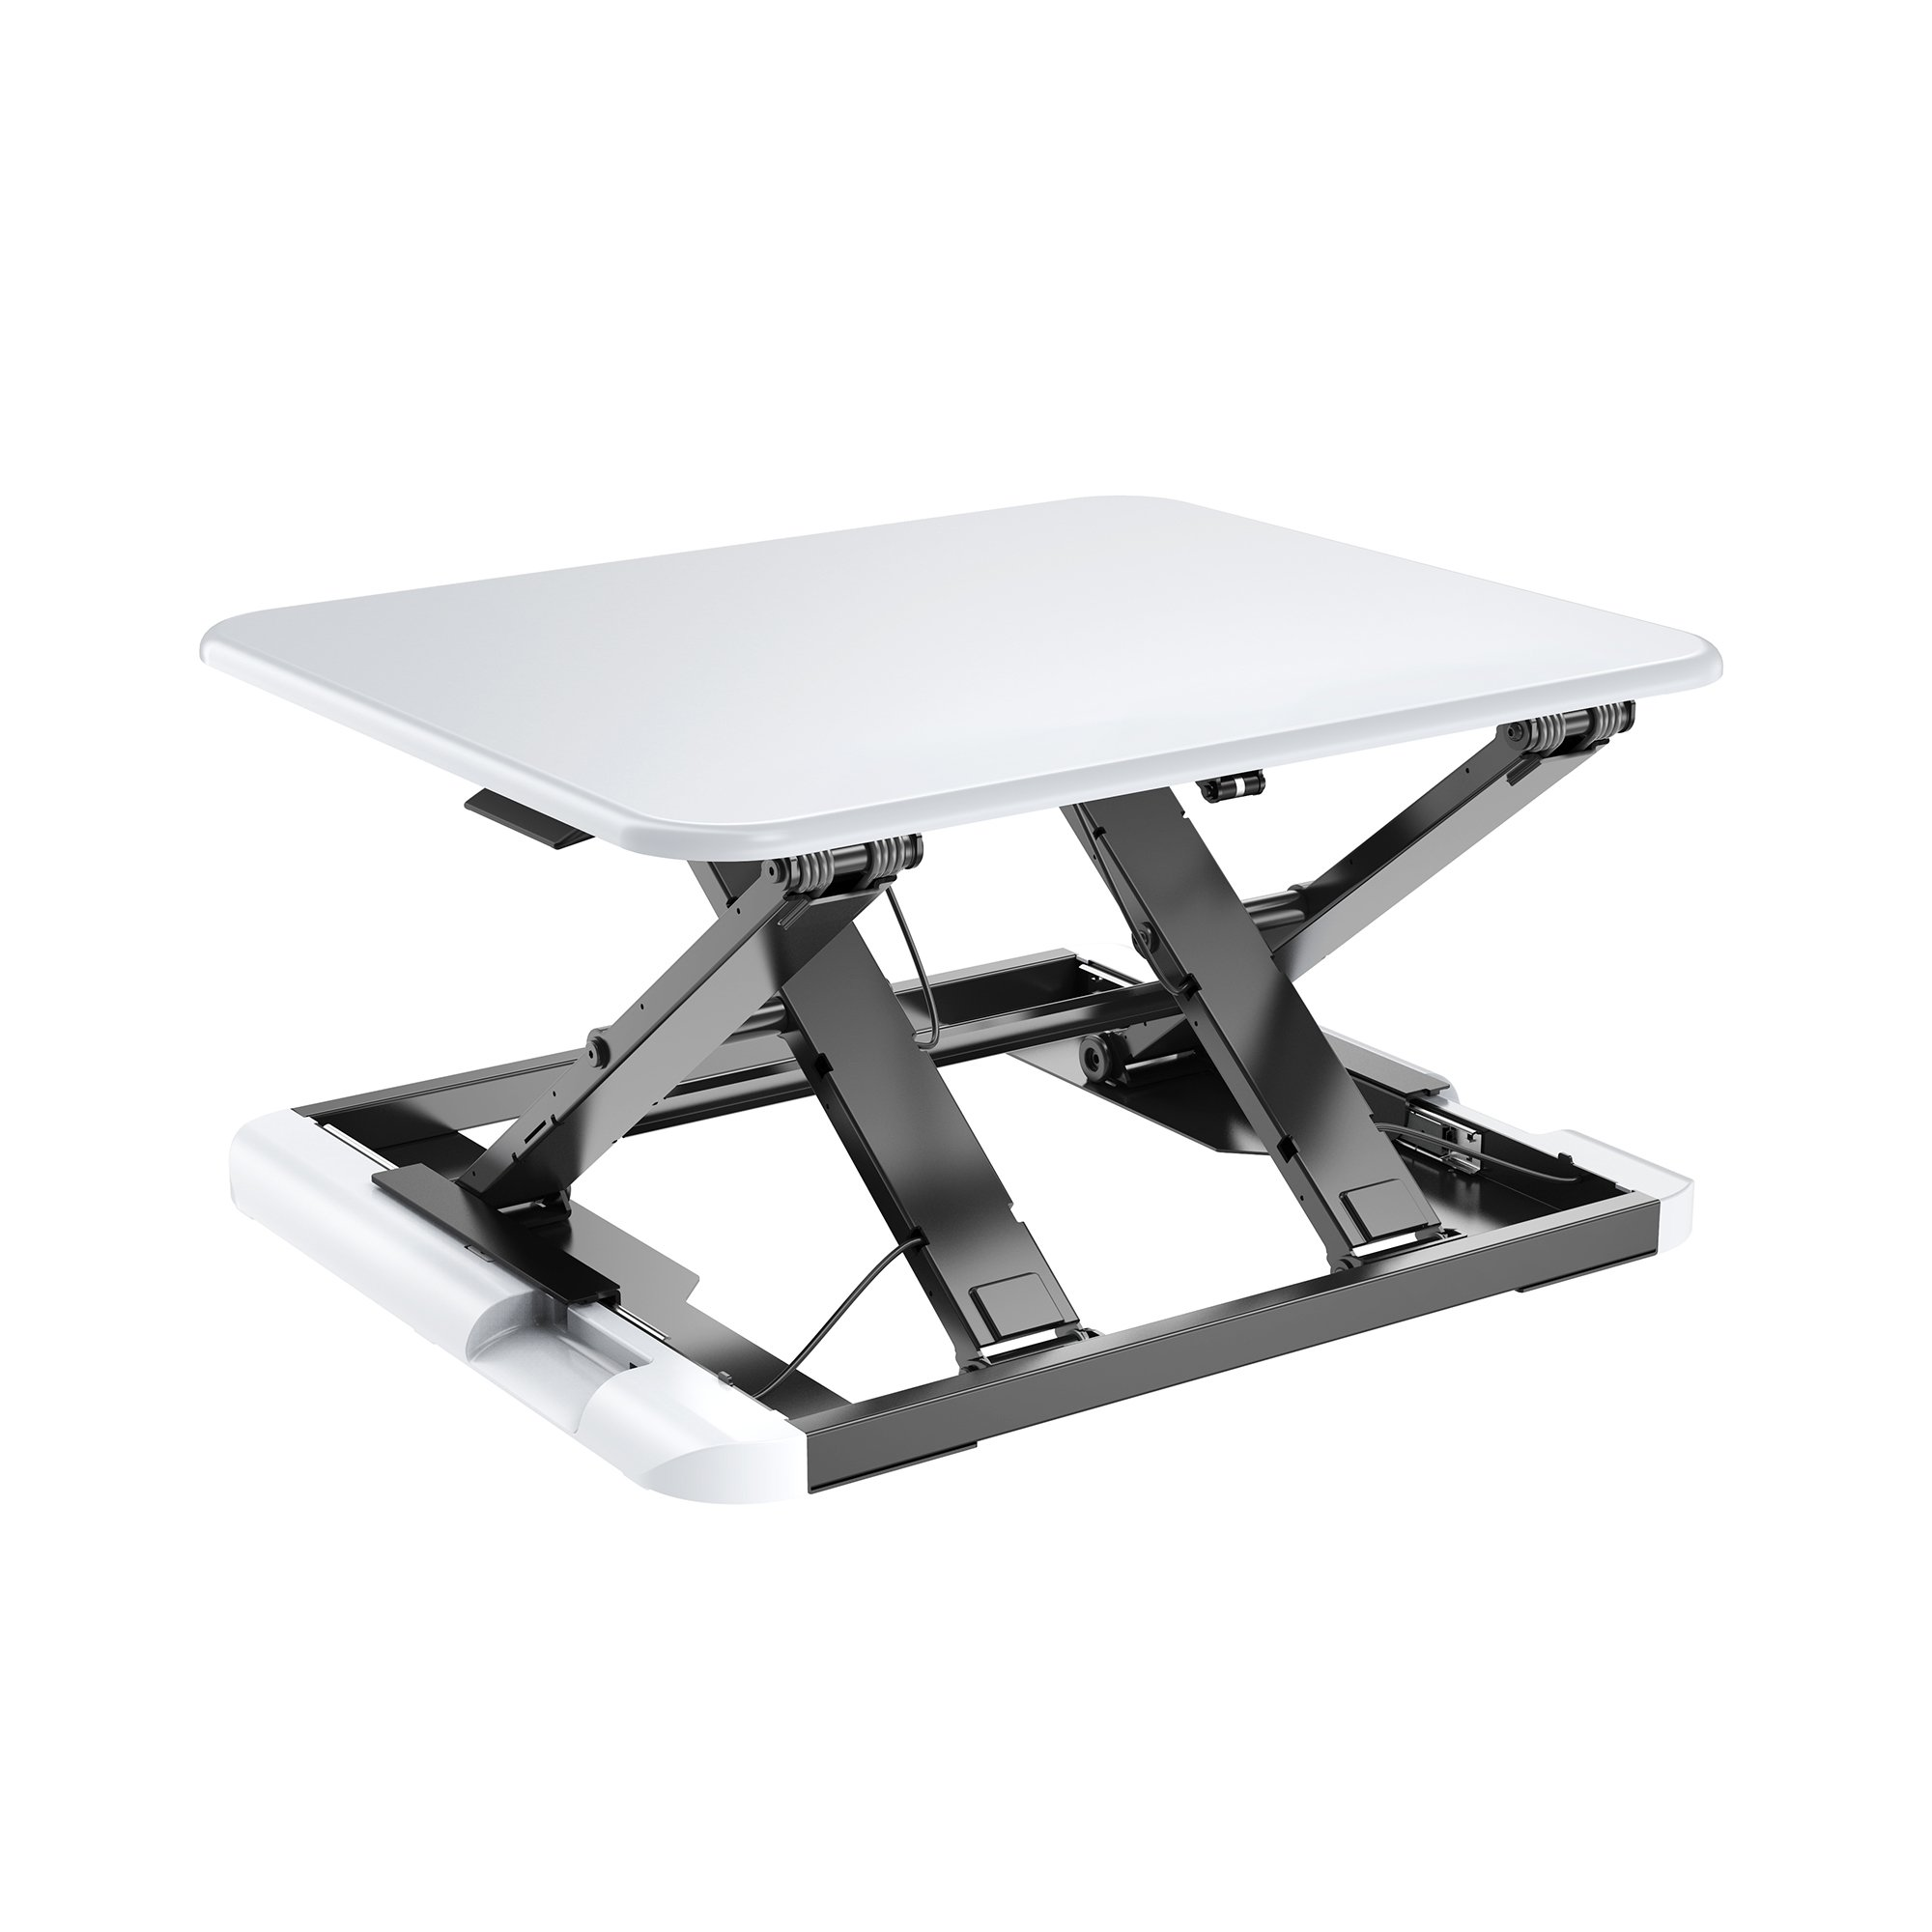 TOTALPACK Standing Desk -X-Elite PRO Sit Stand Desk Converter - Anti Fatigue Height Adjustable Workstation, Extra Large 26.5'' x 22.2'' Desktop Surface, Easy To Raise & Lower - Pre-Assembled, White